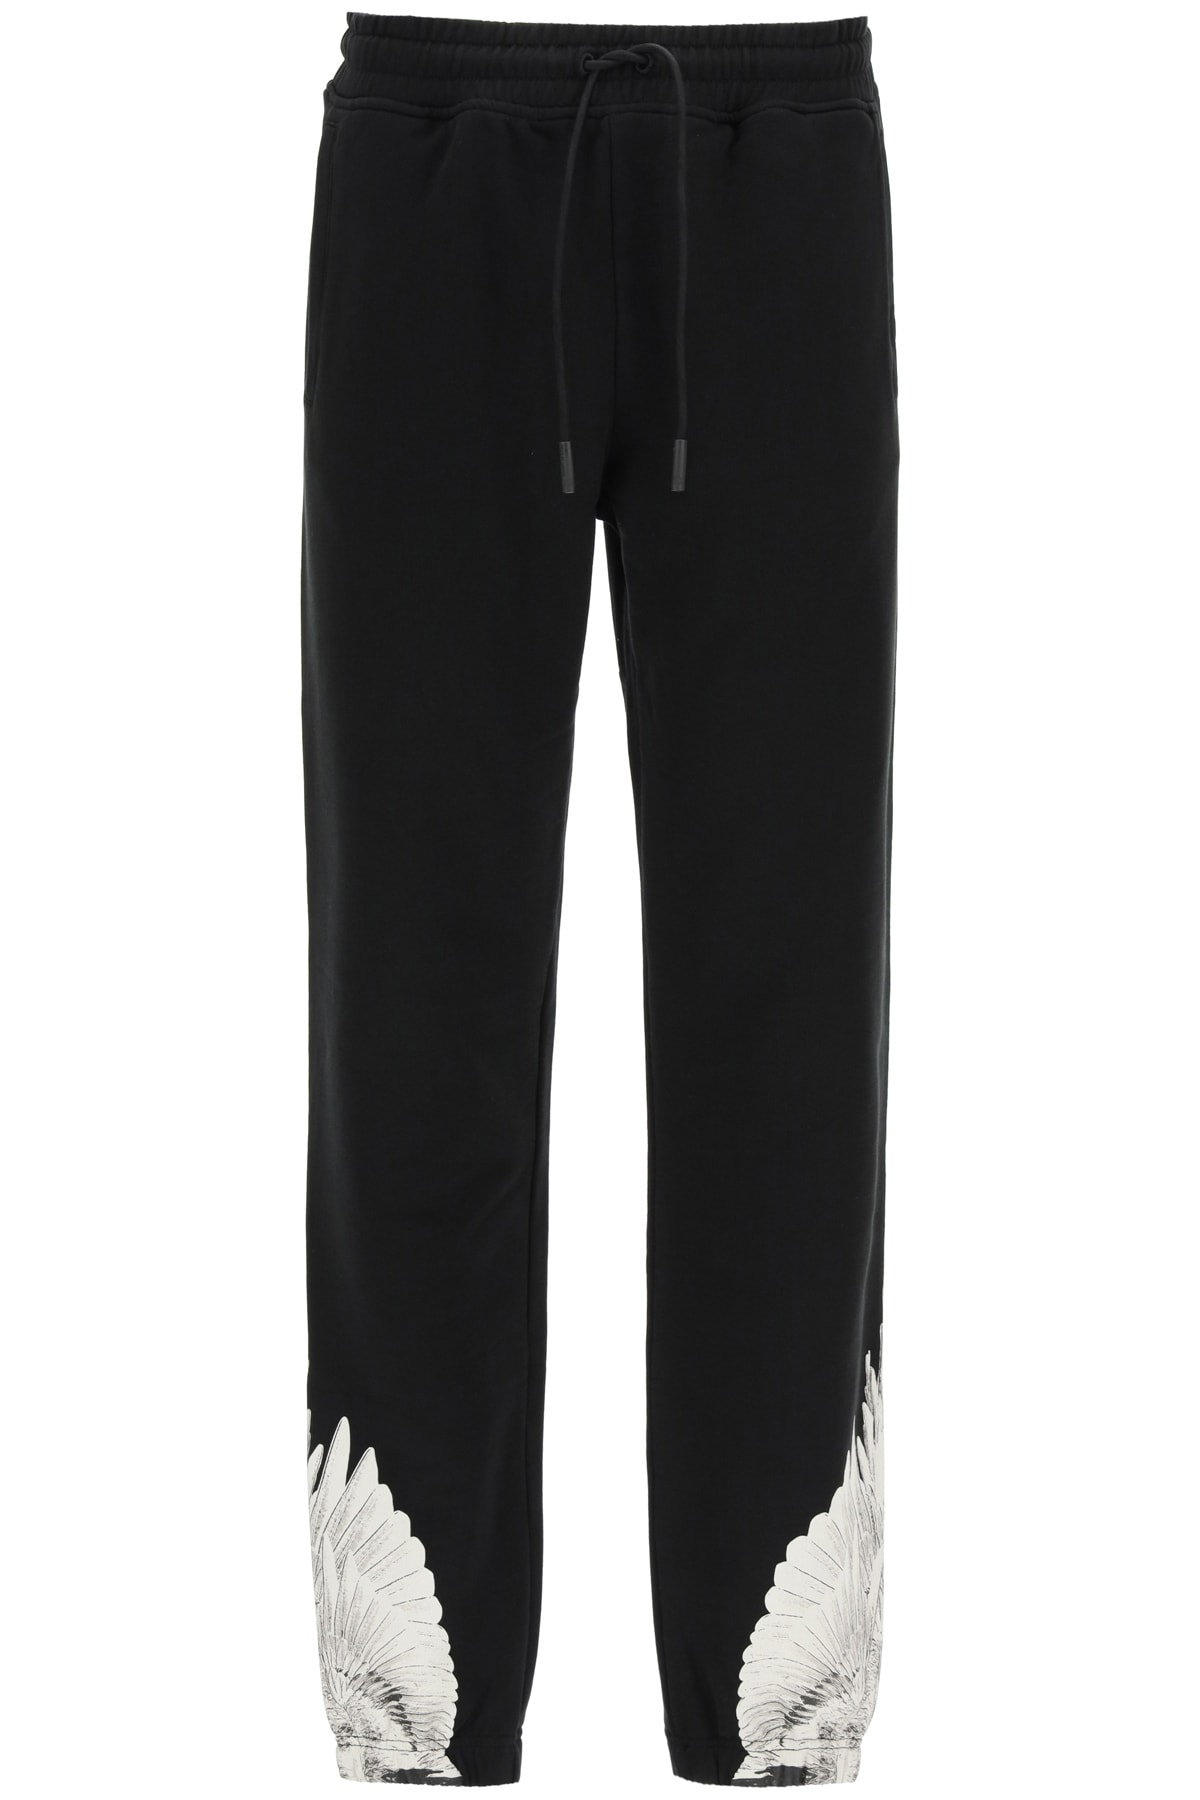 Marcelo Burlon County Of Milan WINGS PRINT SWEATPANTS